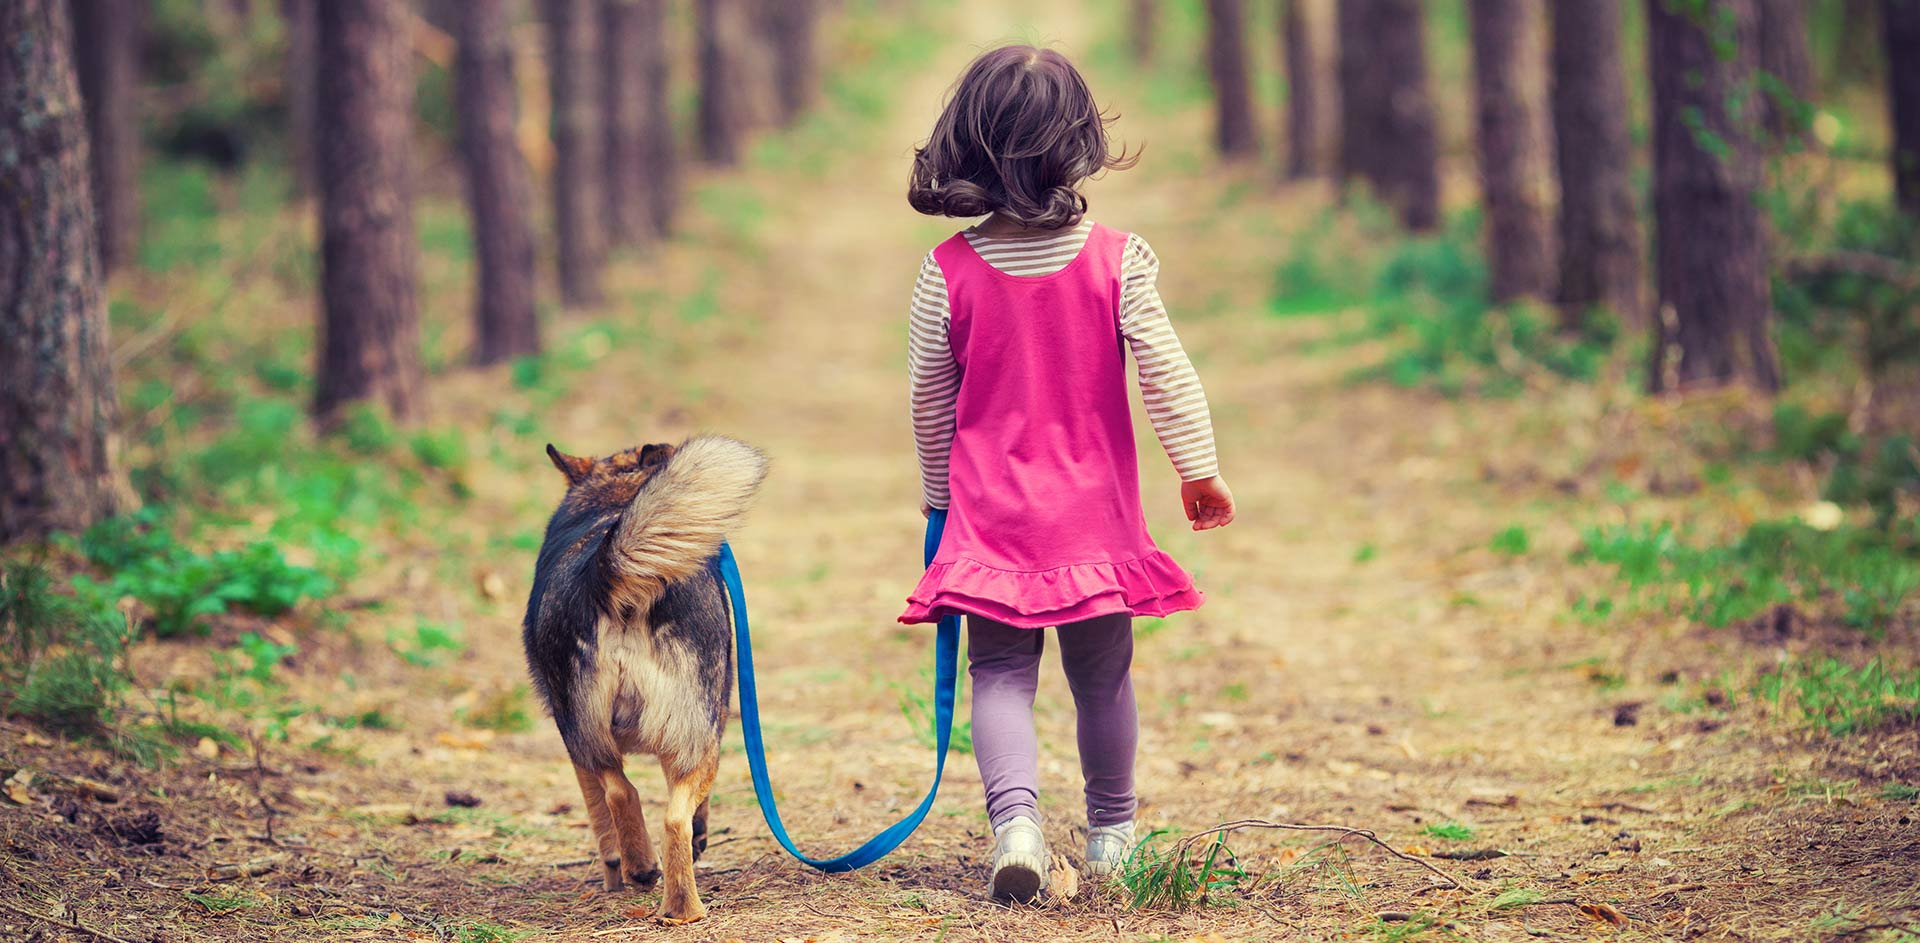 Training Small Dogs To Walk On A Leash